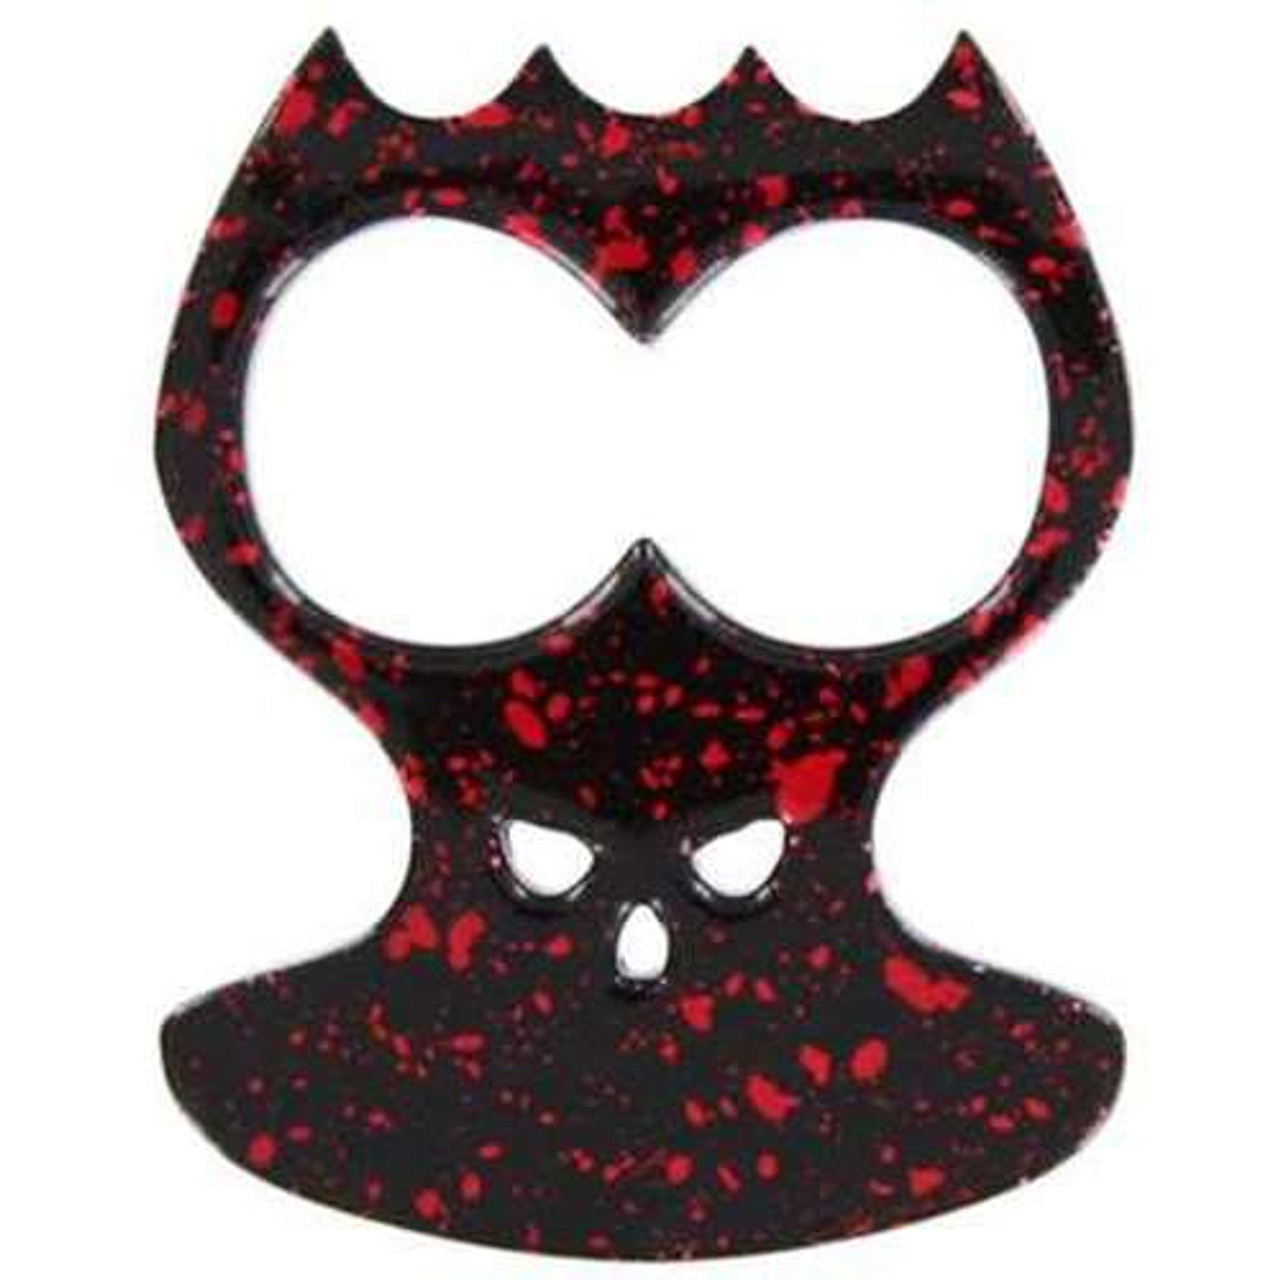 Bone Crusher Self Defense Spotted Red Knuckle